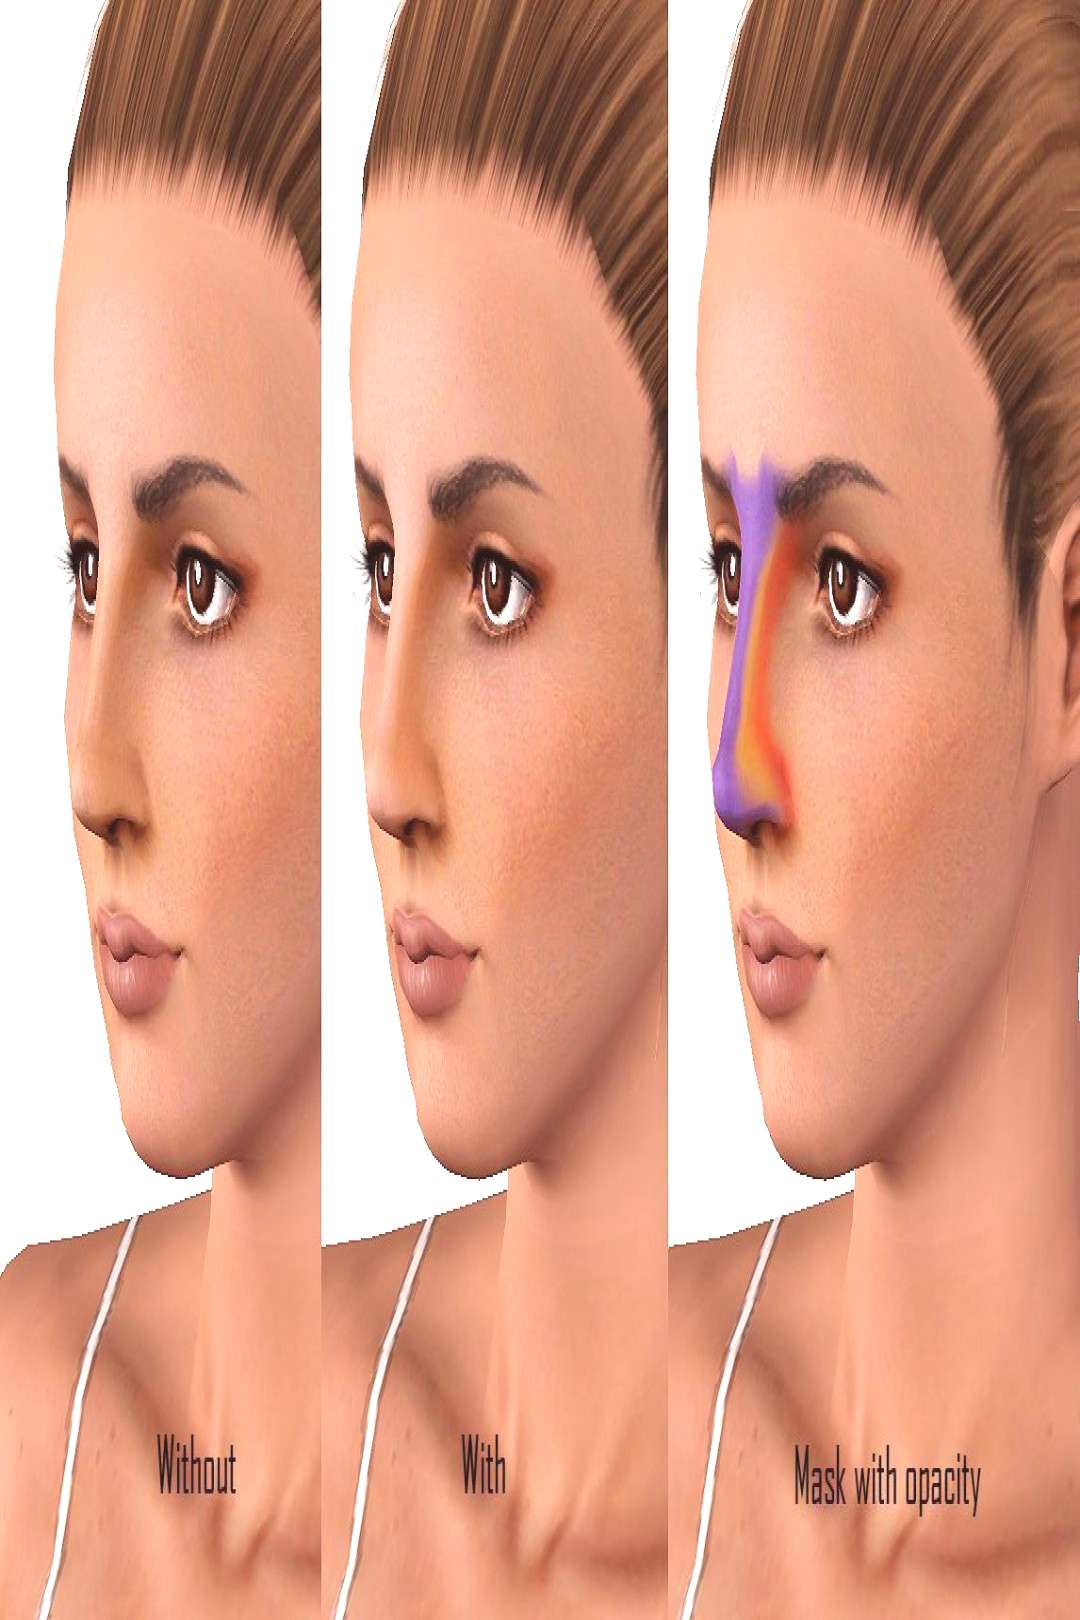 Mod The Sims - Nose Contouring Blush - Mod The Sims – Nose Contouring Blush -